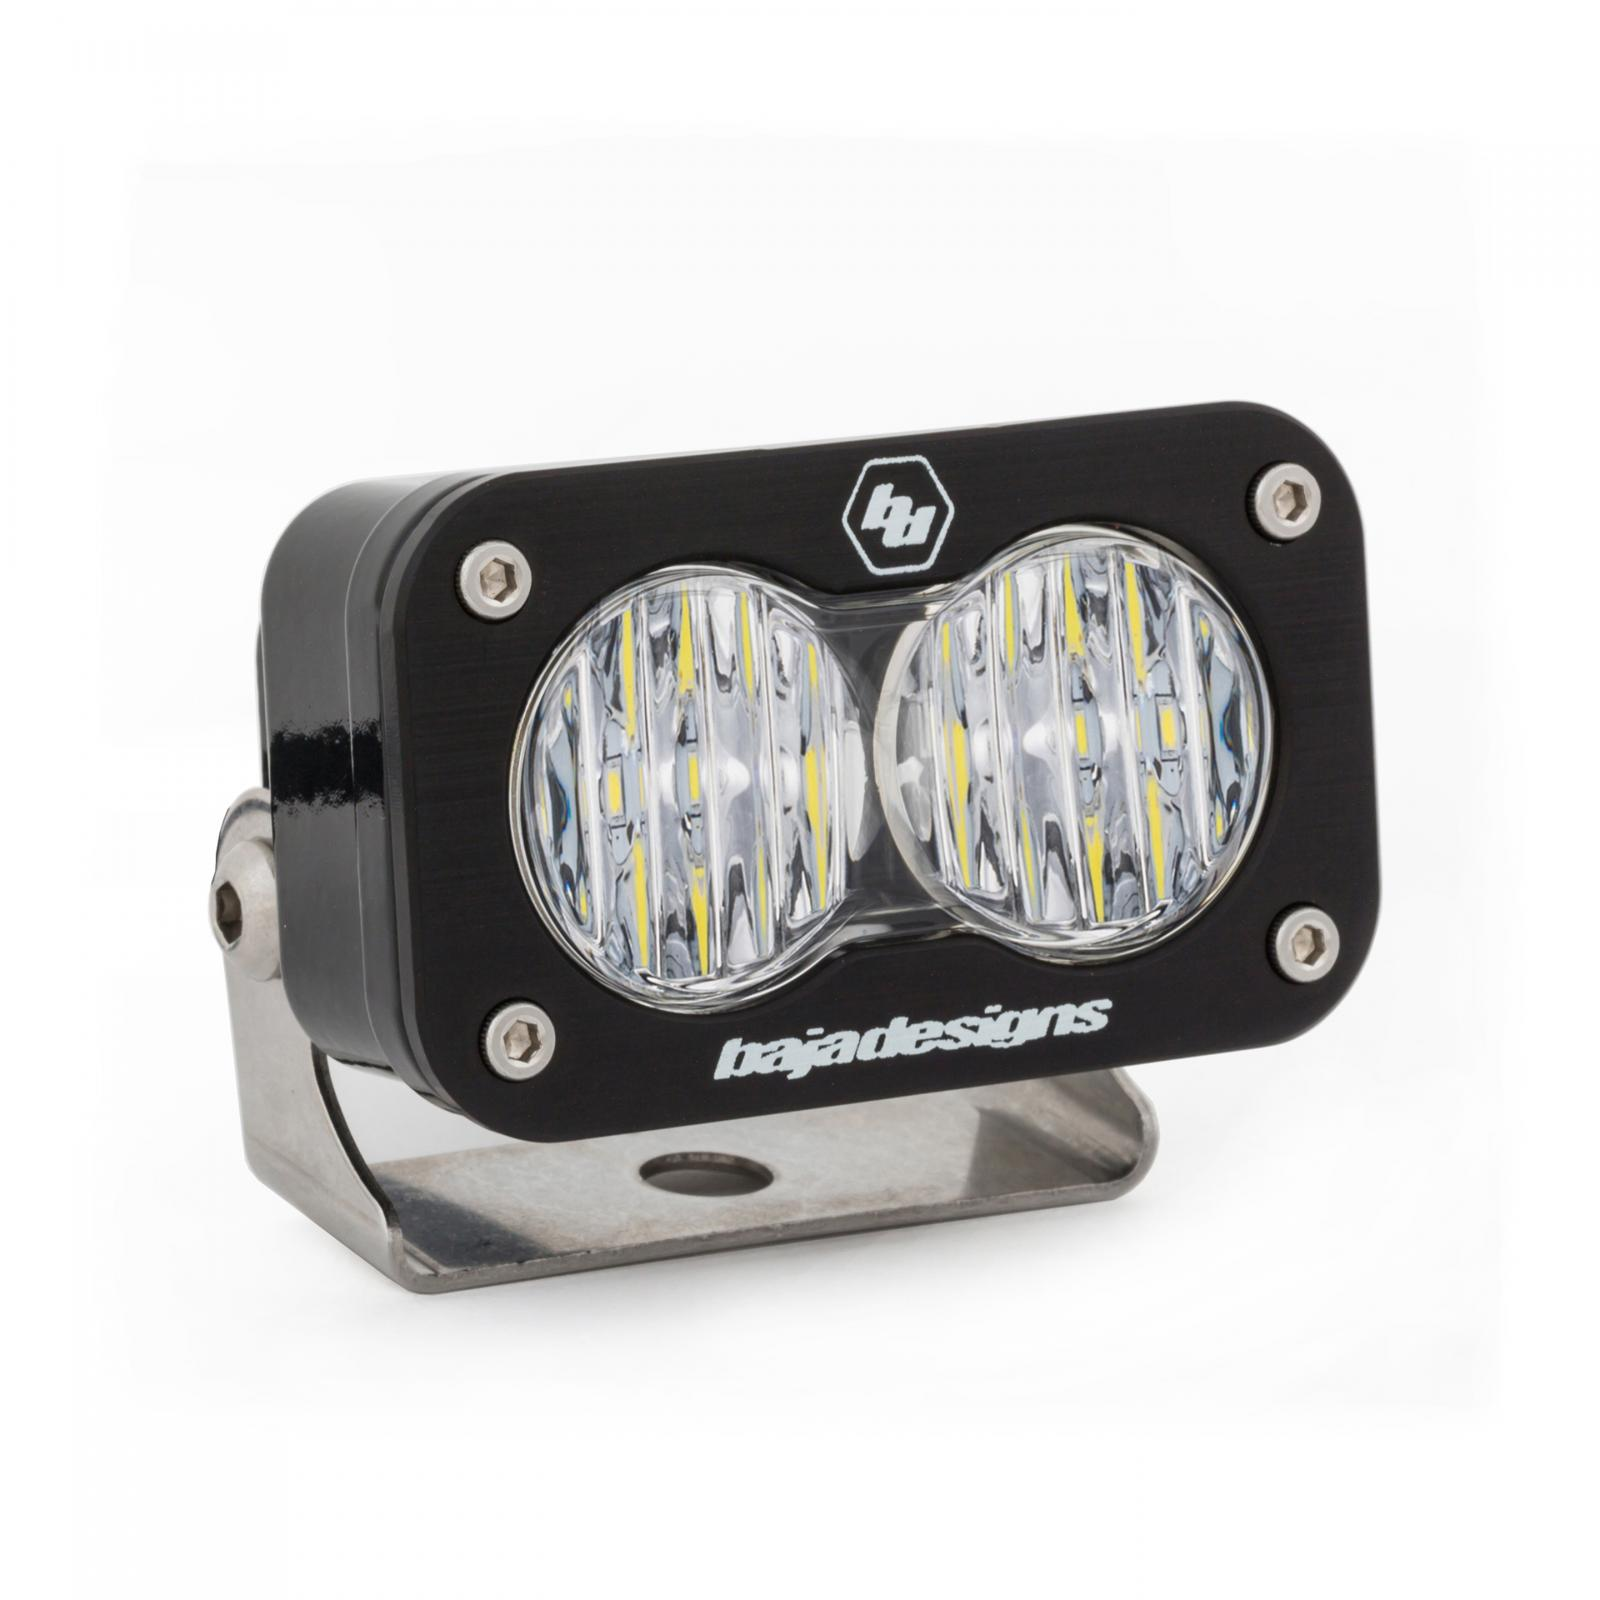 LED Work Light Clear Lens Wide Driving Pattern S2 Pro Baja Designs